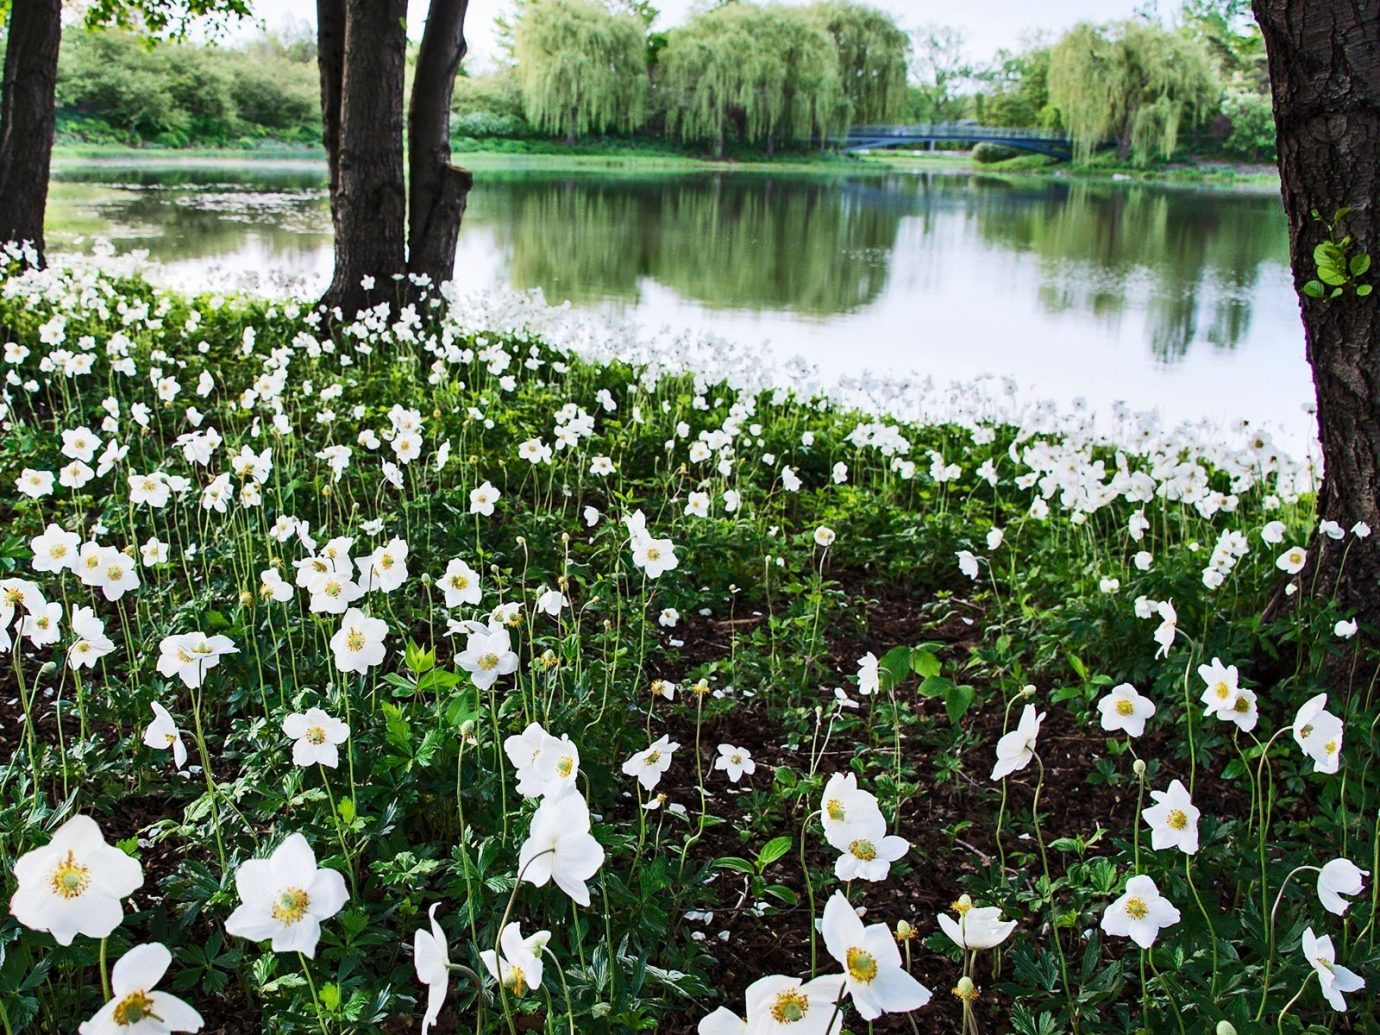 Offbeat tree outdoor flower water Nature Lake flora plant botany land plant River Garden meadow woodland flowering plant surrounded wildflower bushes pond